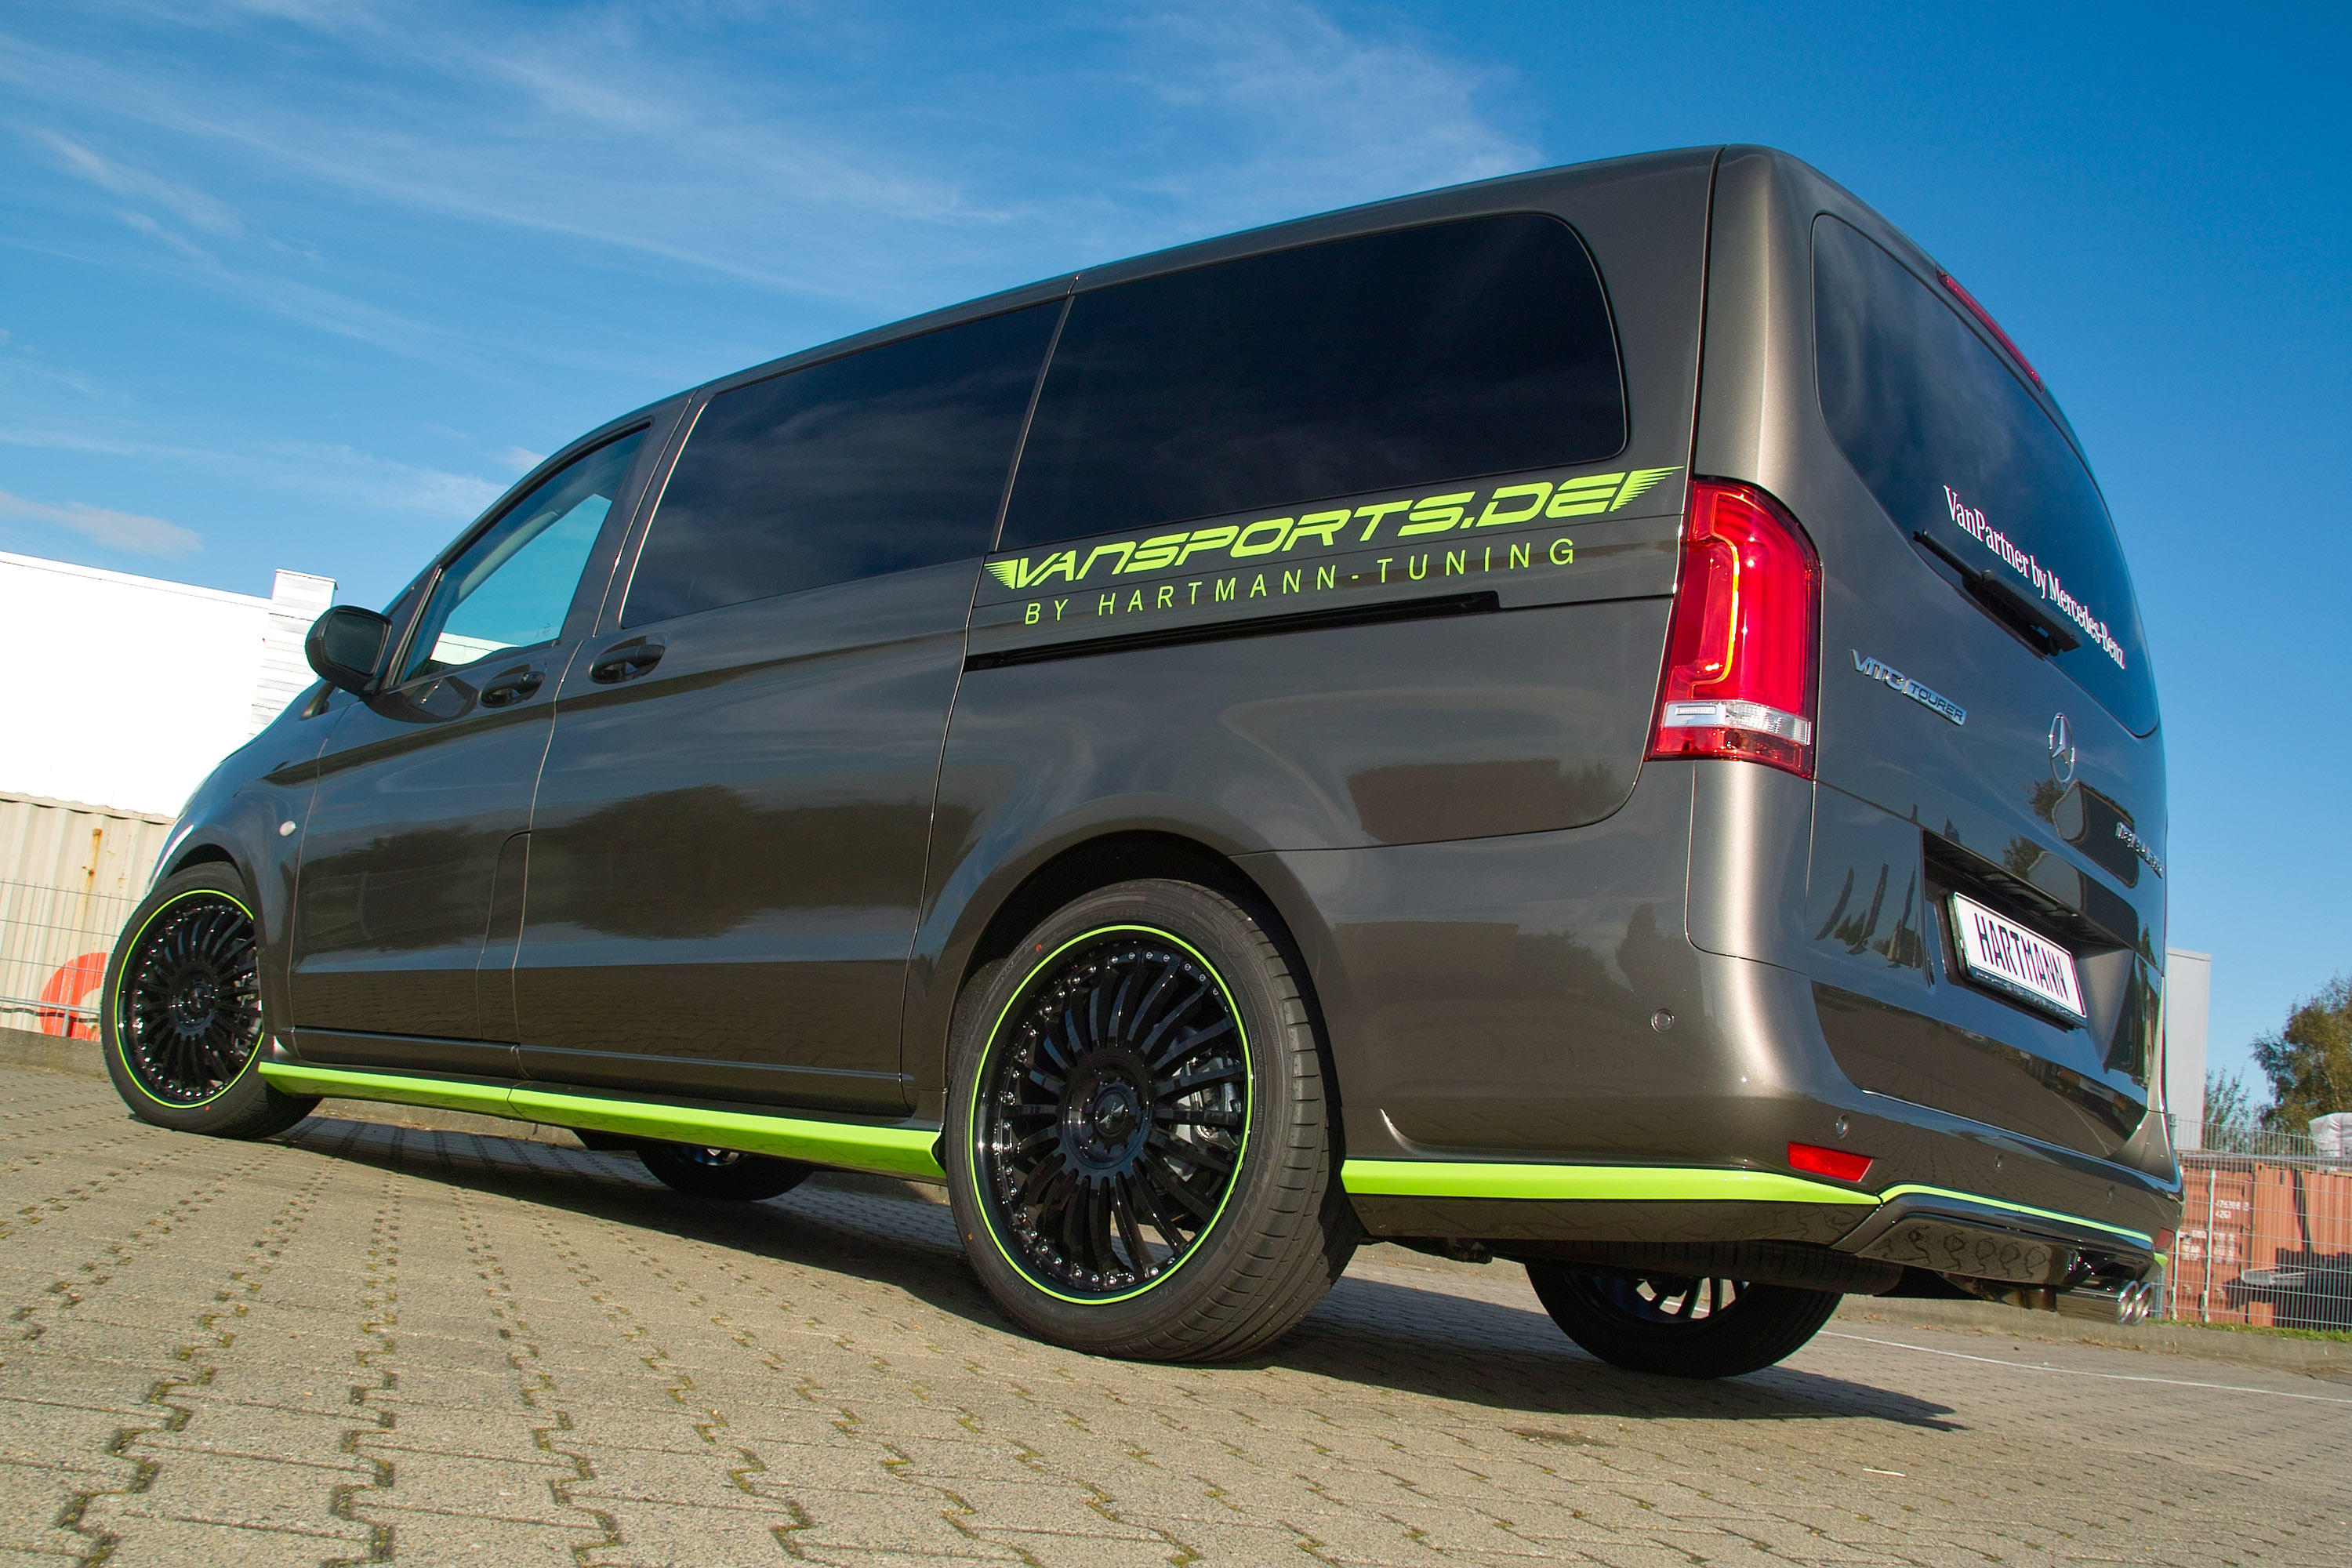 Hartmann Tuning Mercedes Benz Vito Picture 112747